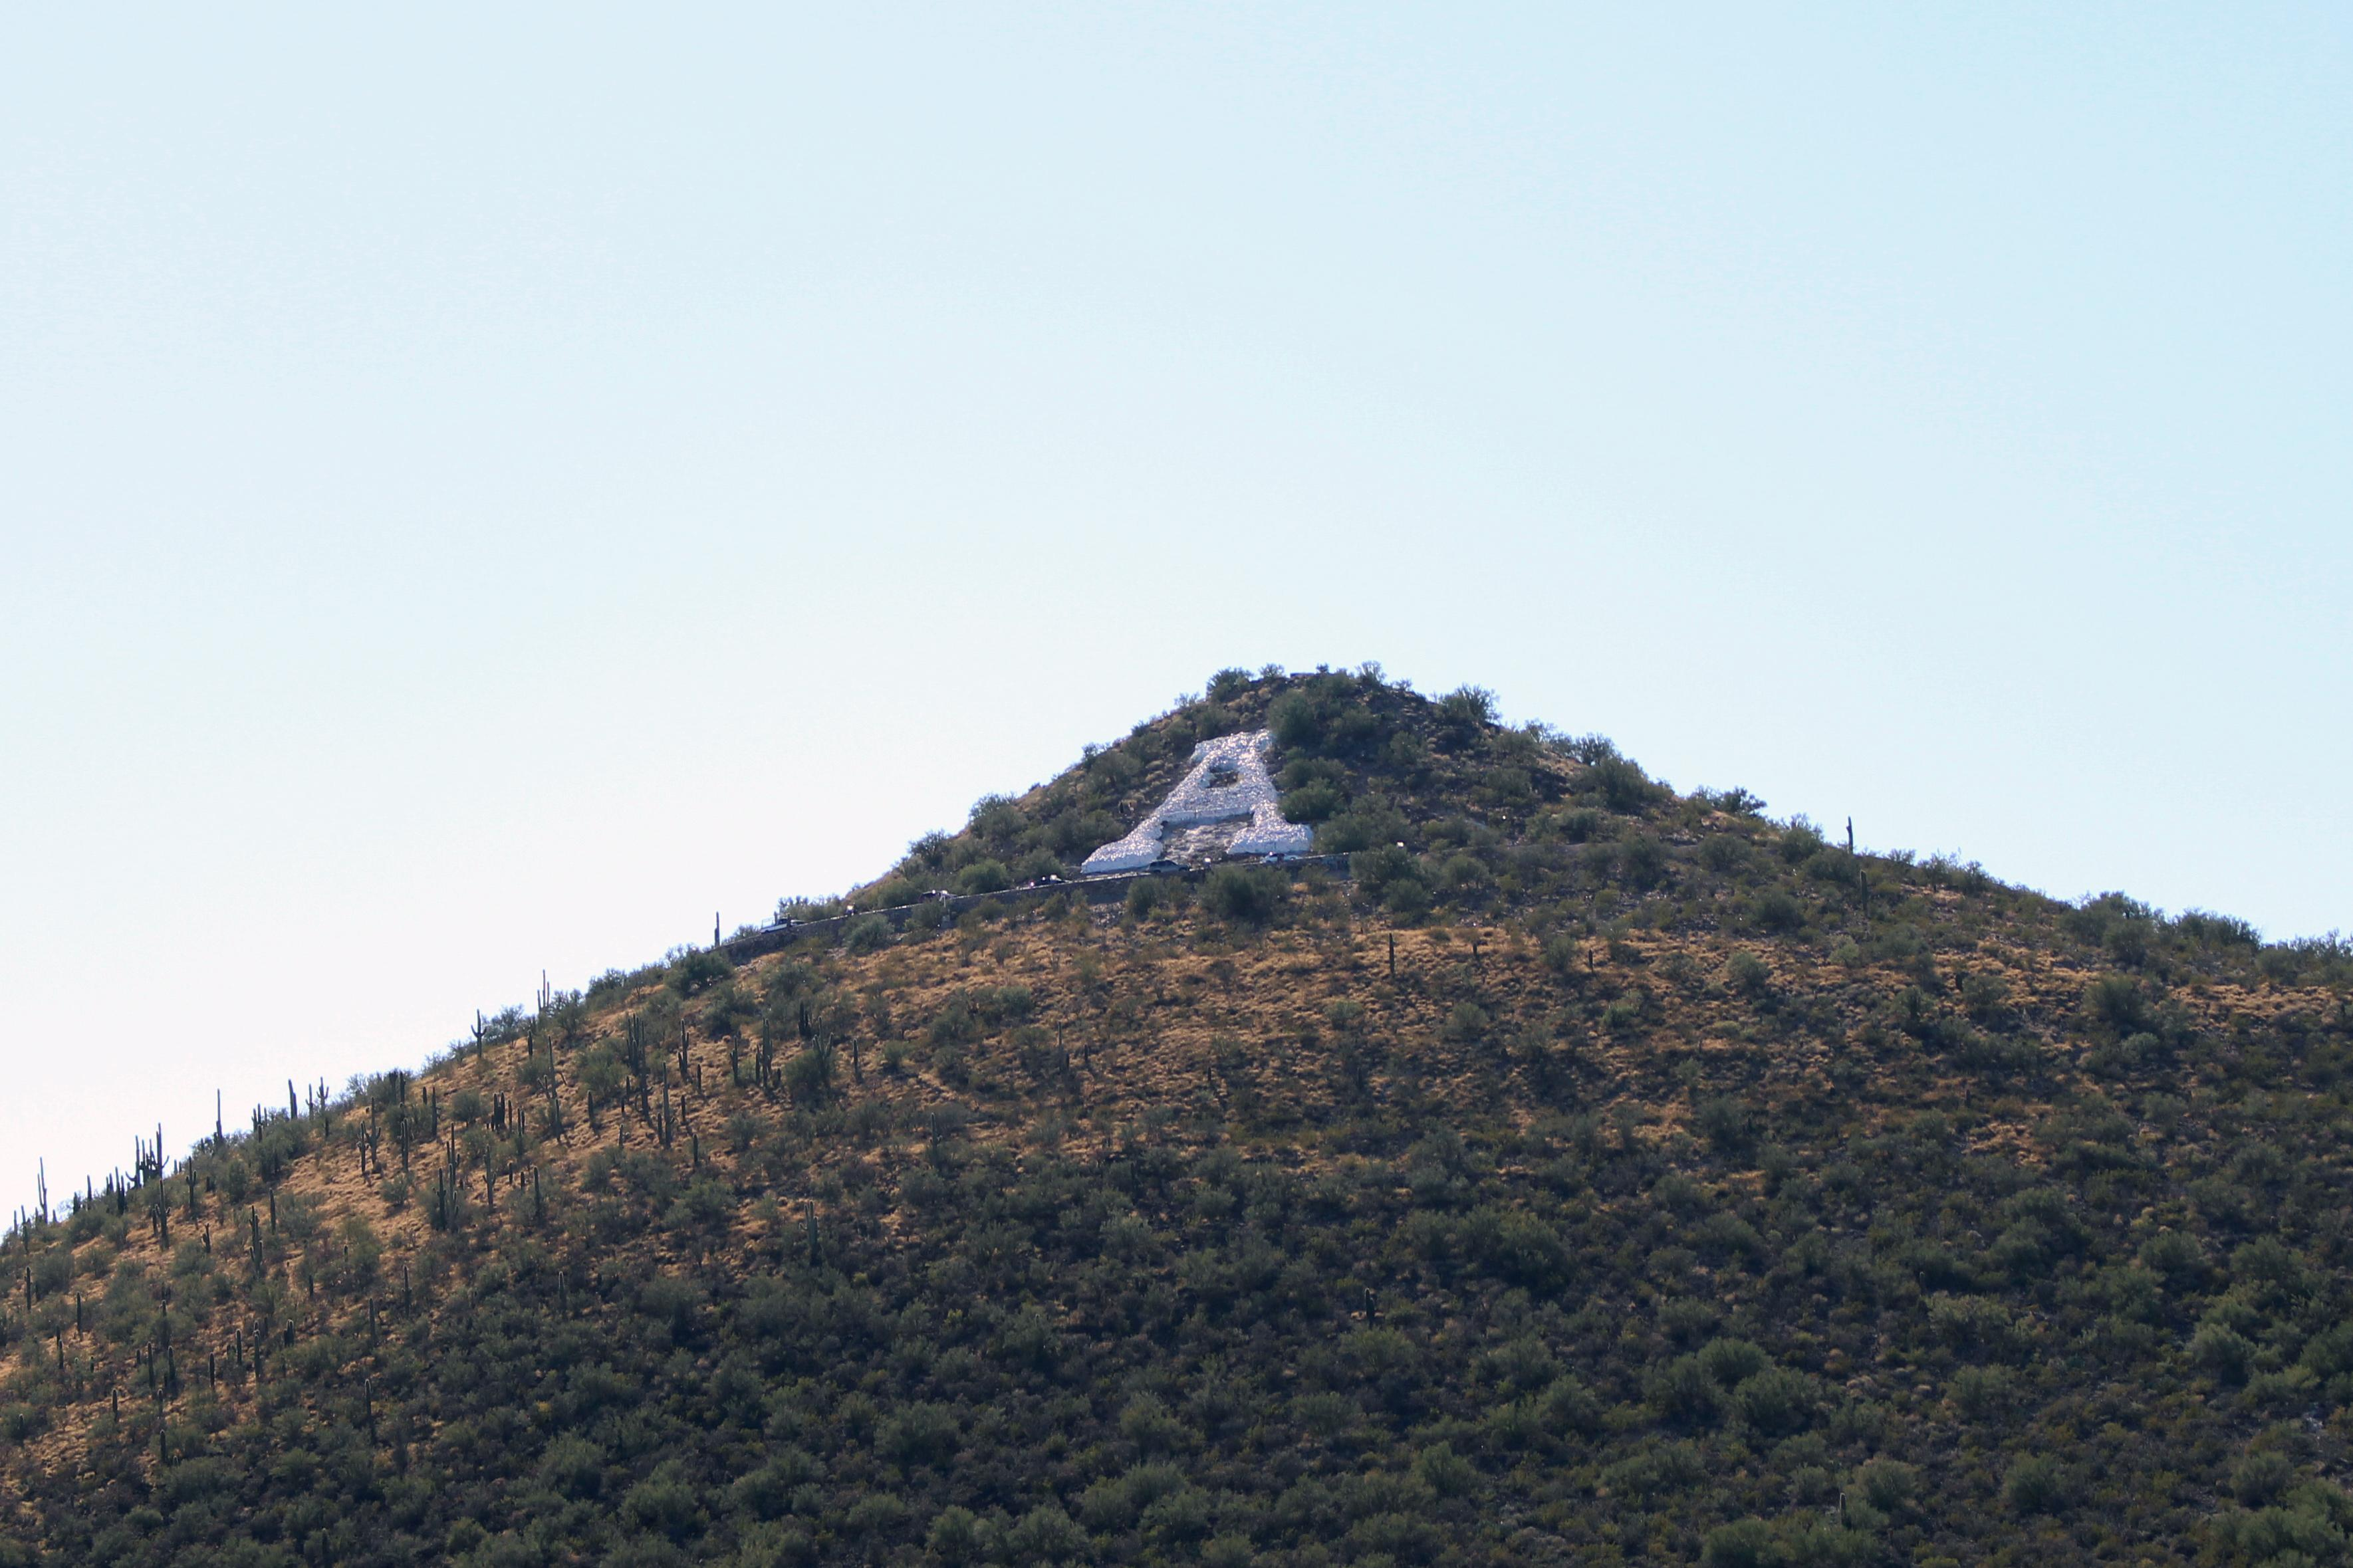 Sentinent Peak in Tucson